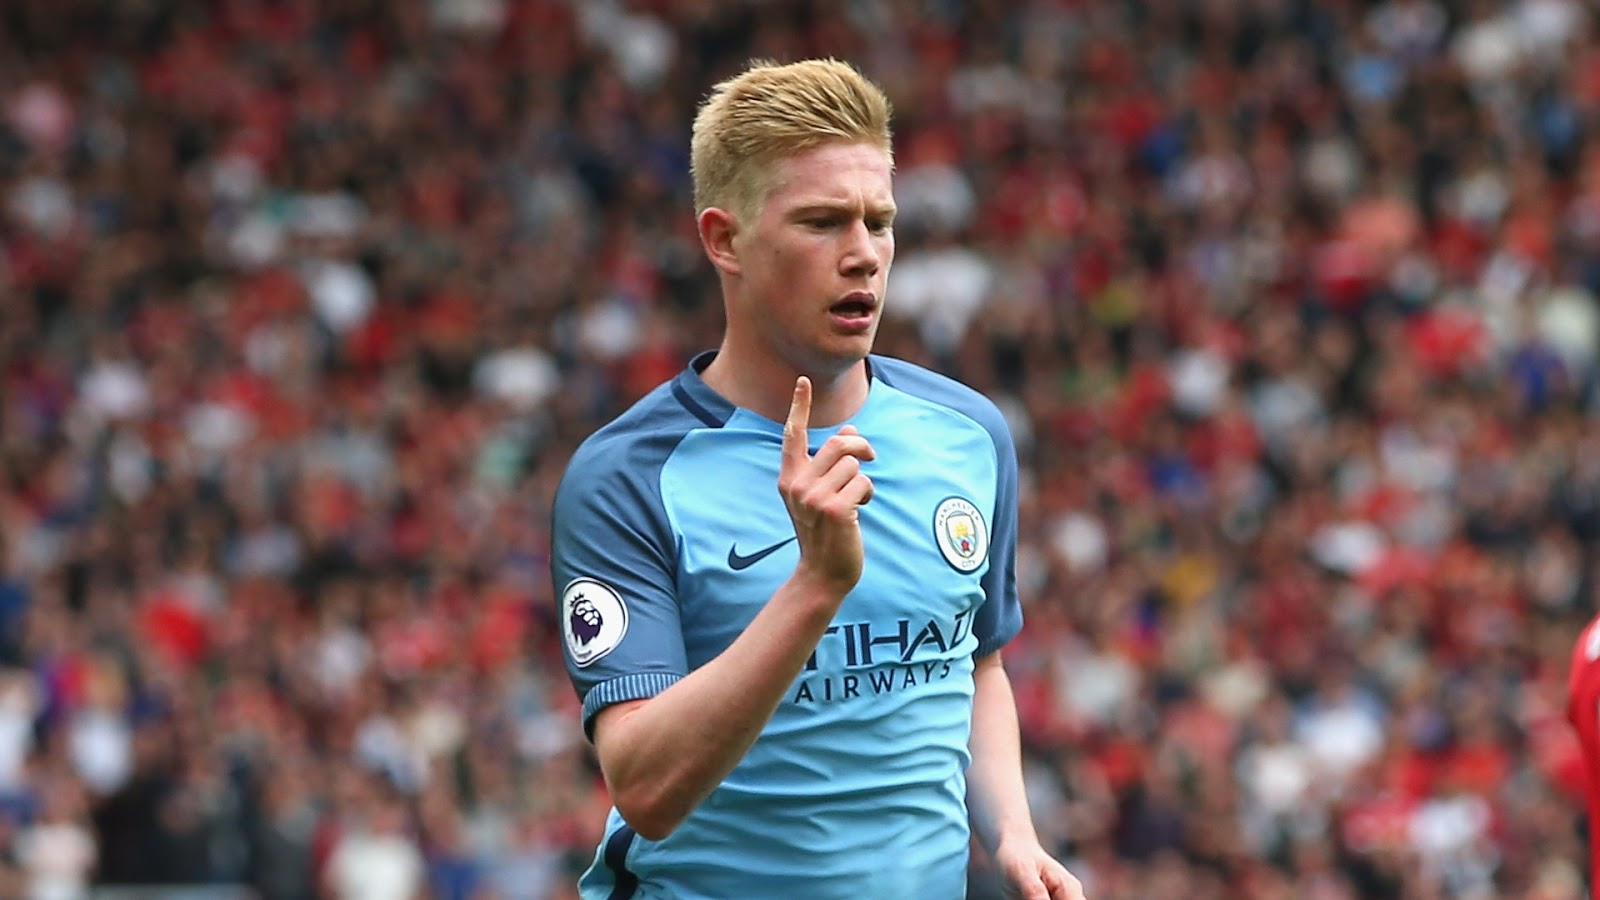 Best Player Kevin De Bruyne HD Wallpapers Download - Free ...